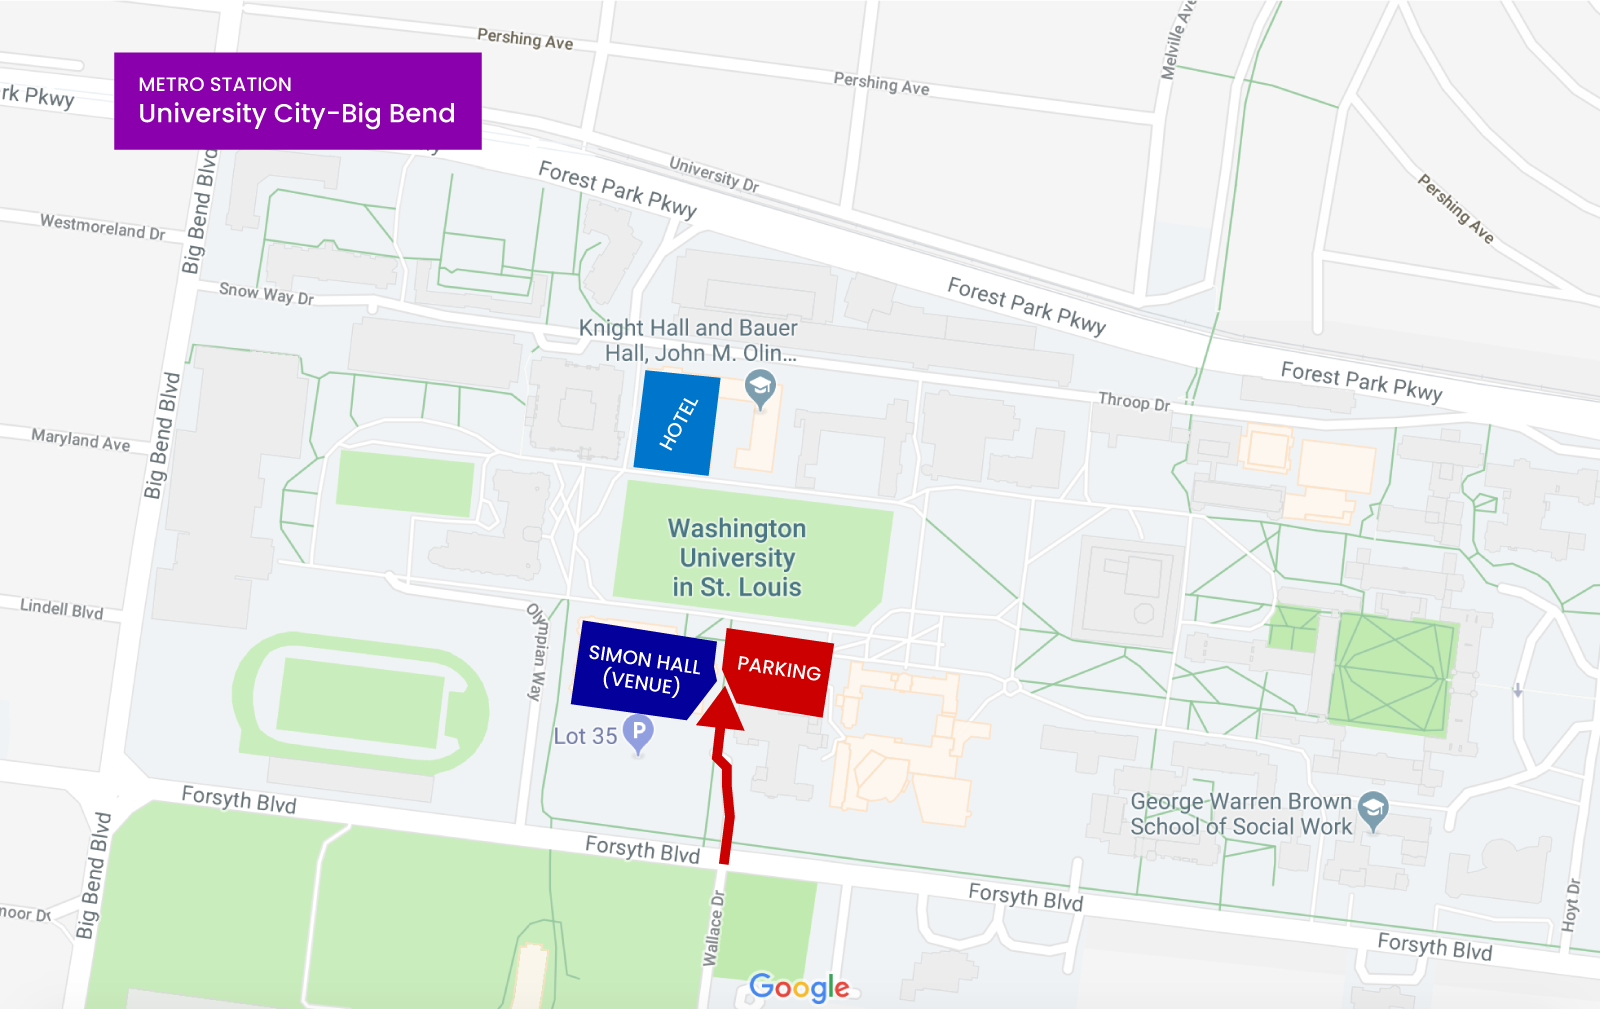 A map of campus, showing the location of Simon Hall related to parking, the on-campus hotel, and the nearest metro strop.